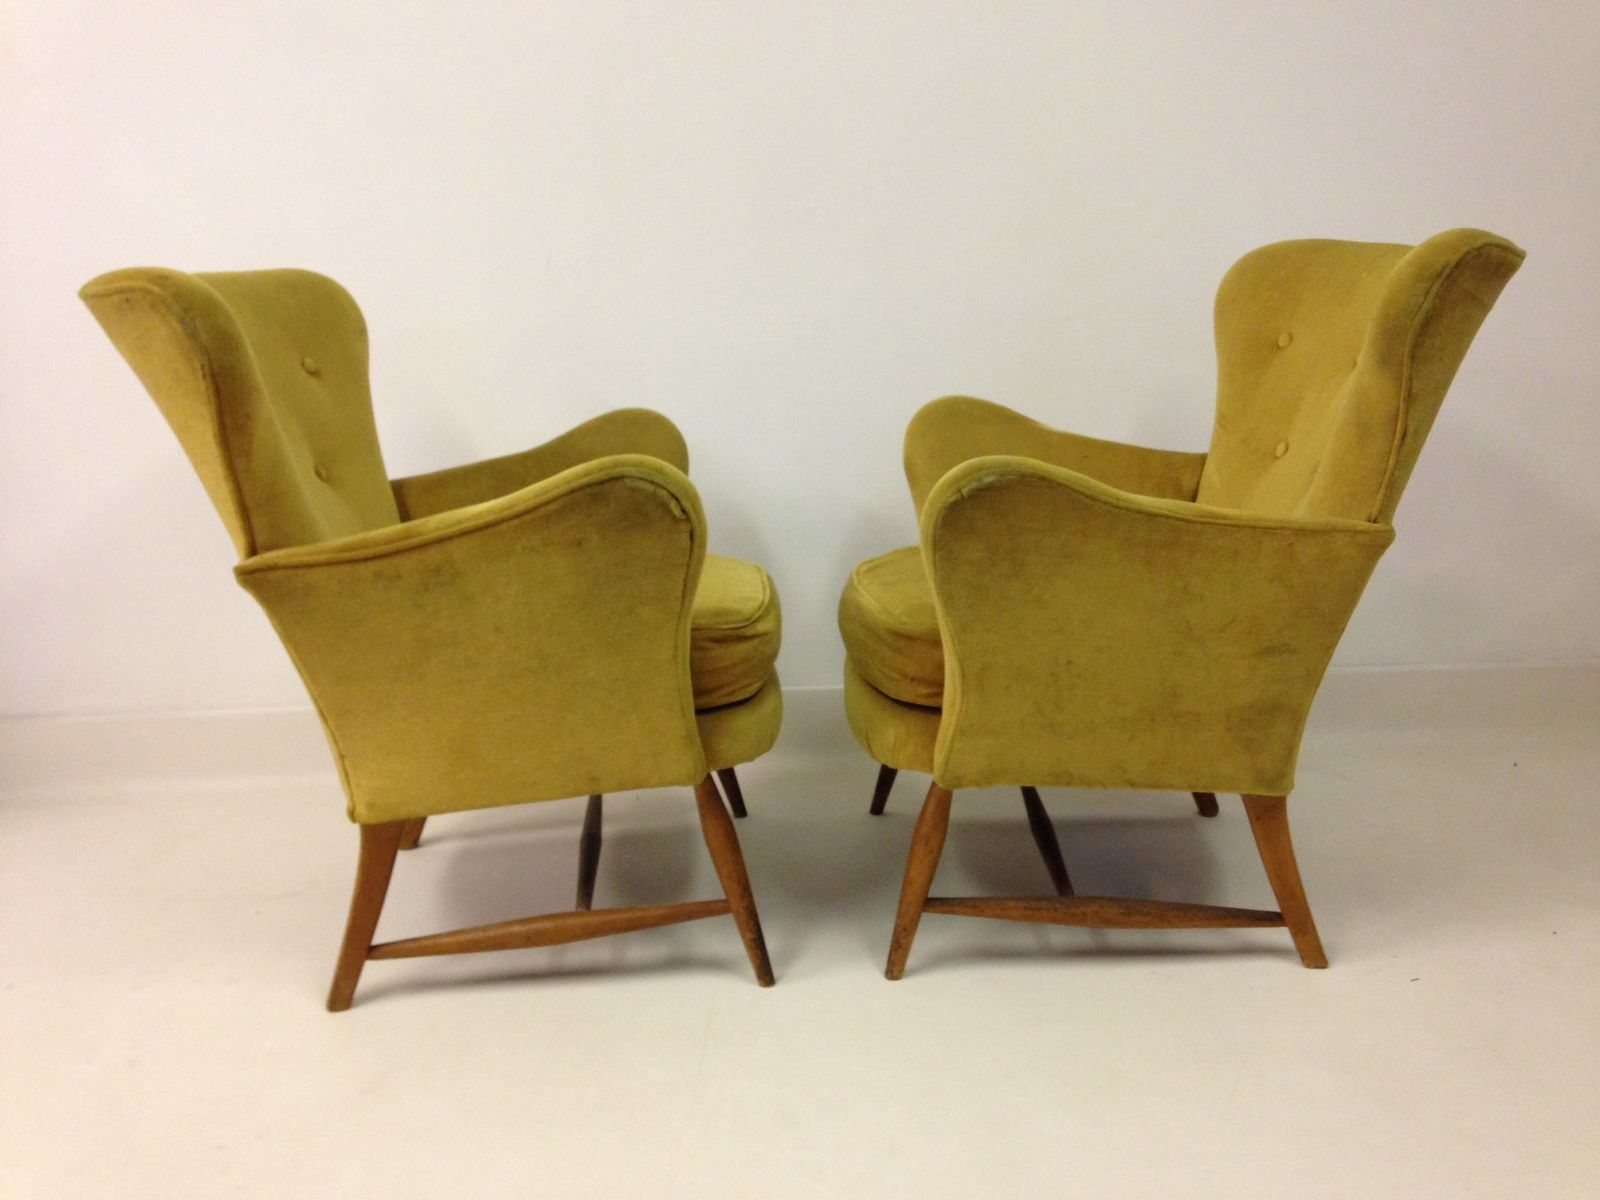 Vintage armchairs from ercol 1950s set of 2 for sale at for 2 armchairs for sale